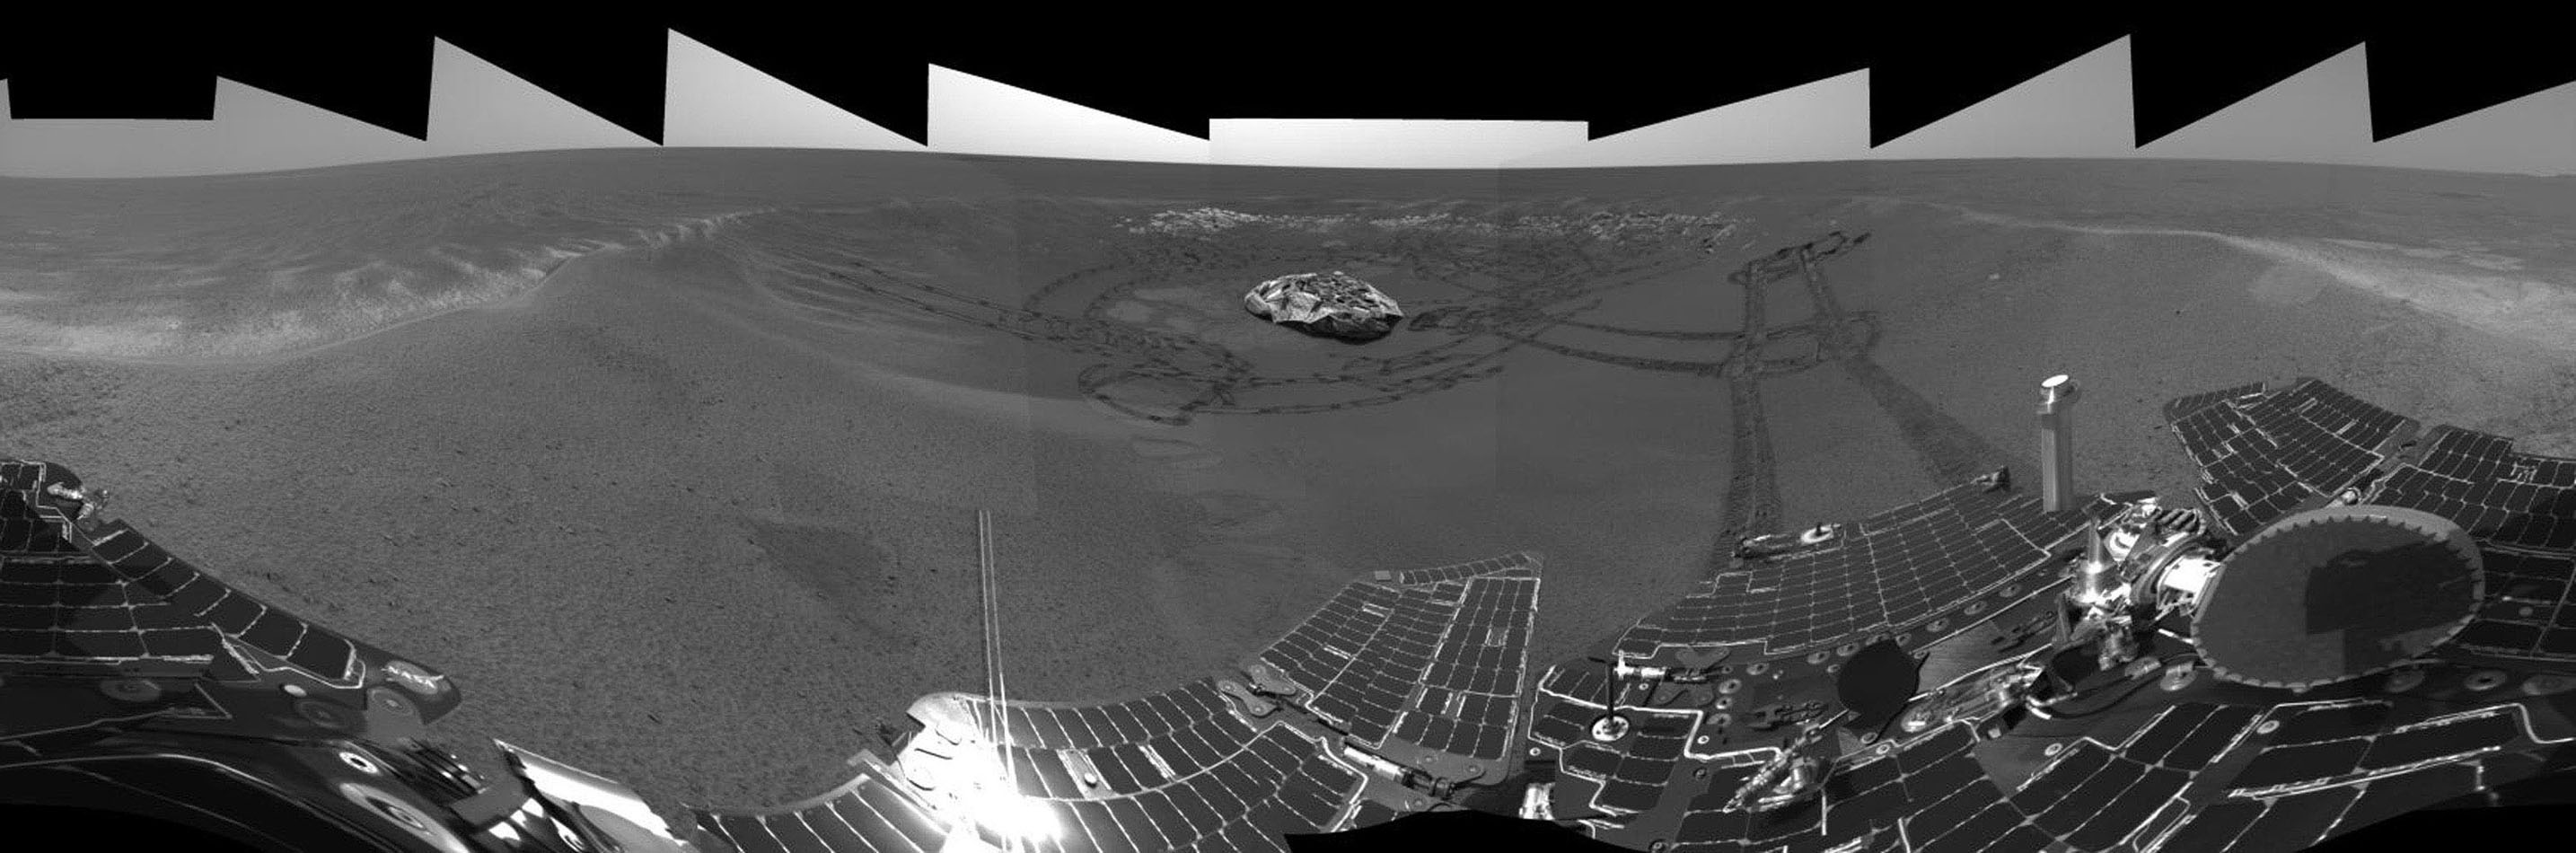 This image from NASA's Mars Exploration Rover Opportunity's view shows the rover's tracks visible at the original spot where the rover attempted unsuccessfully to exit its landing site crater in 2004.